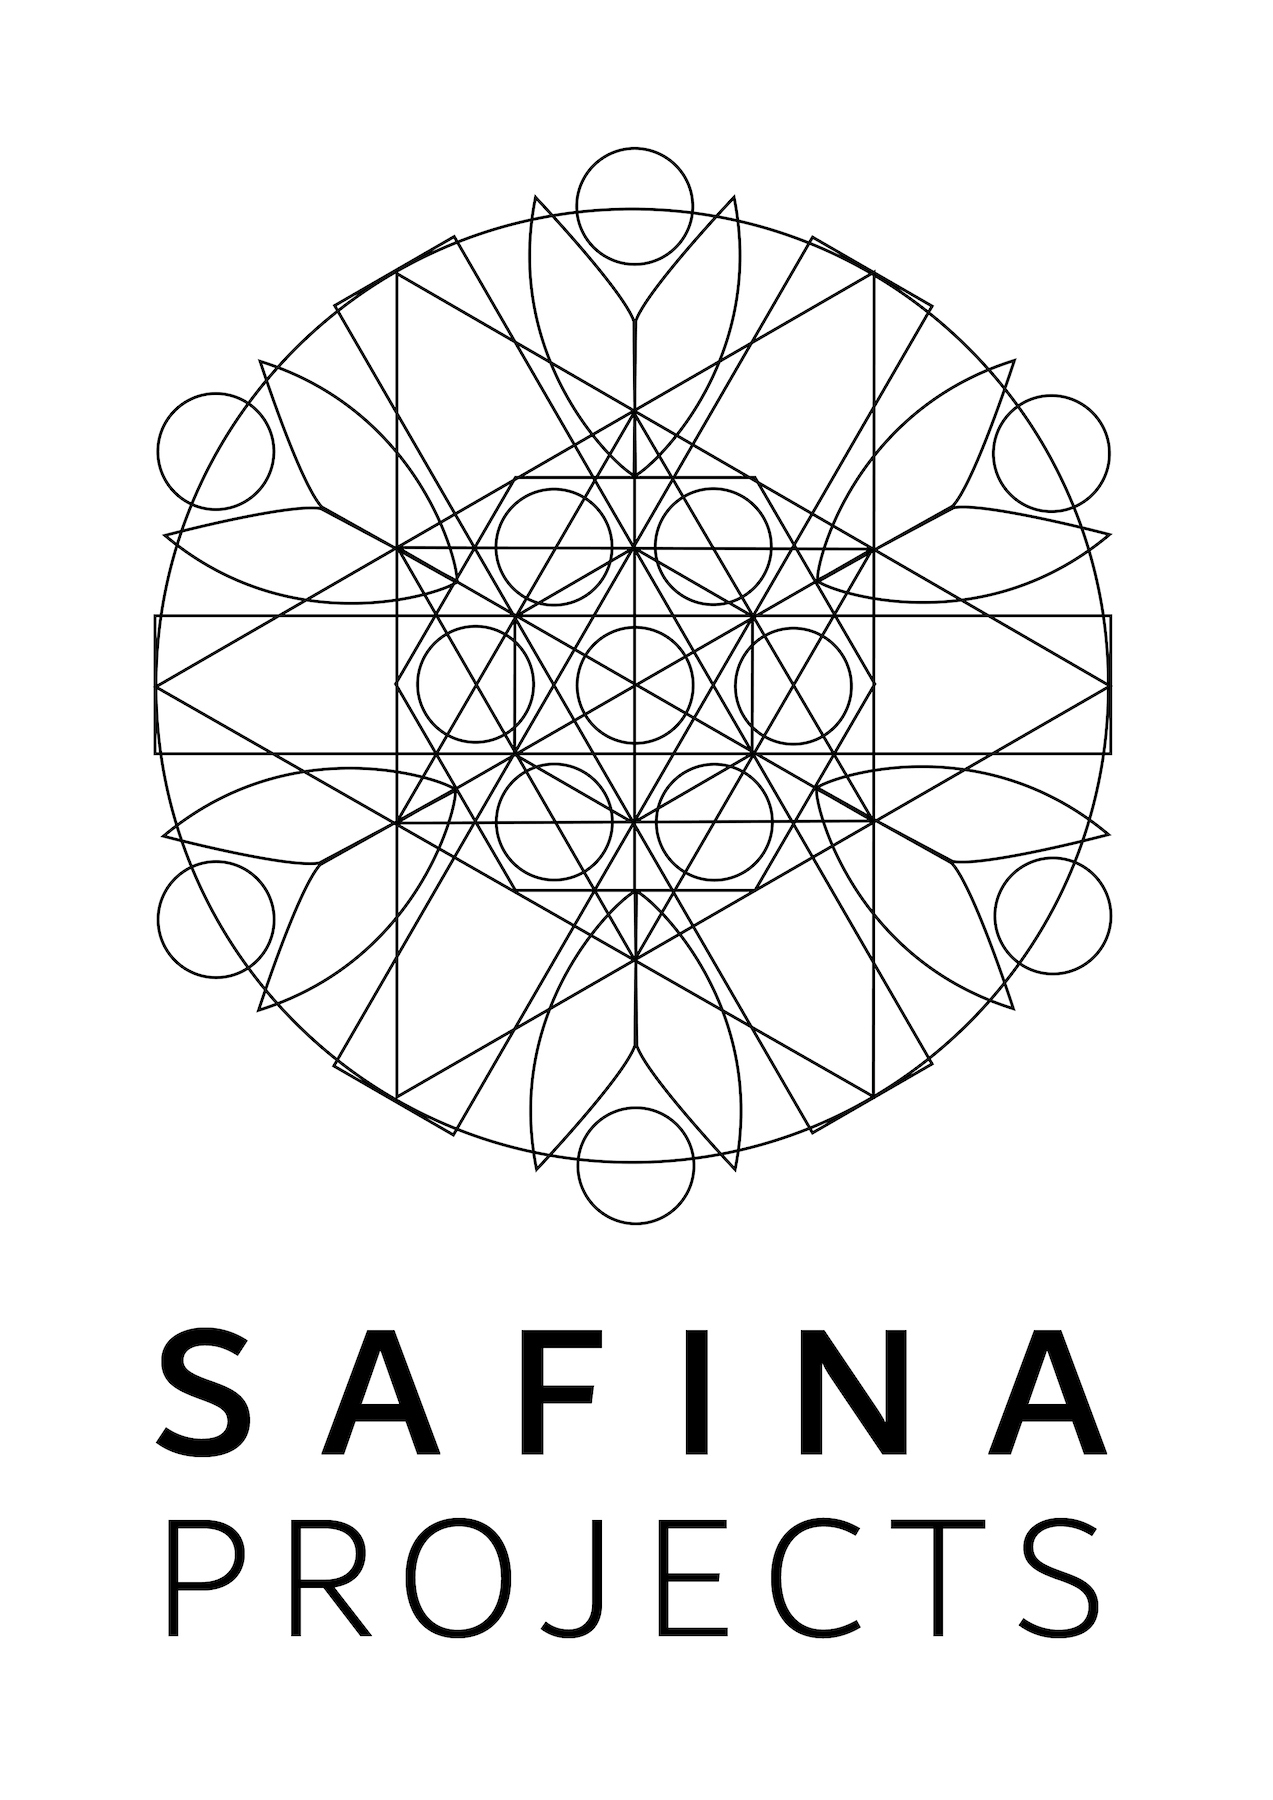 Safina Projects